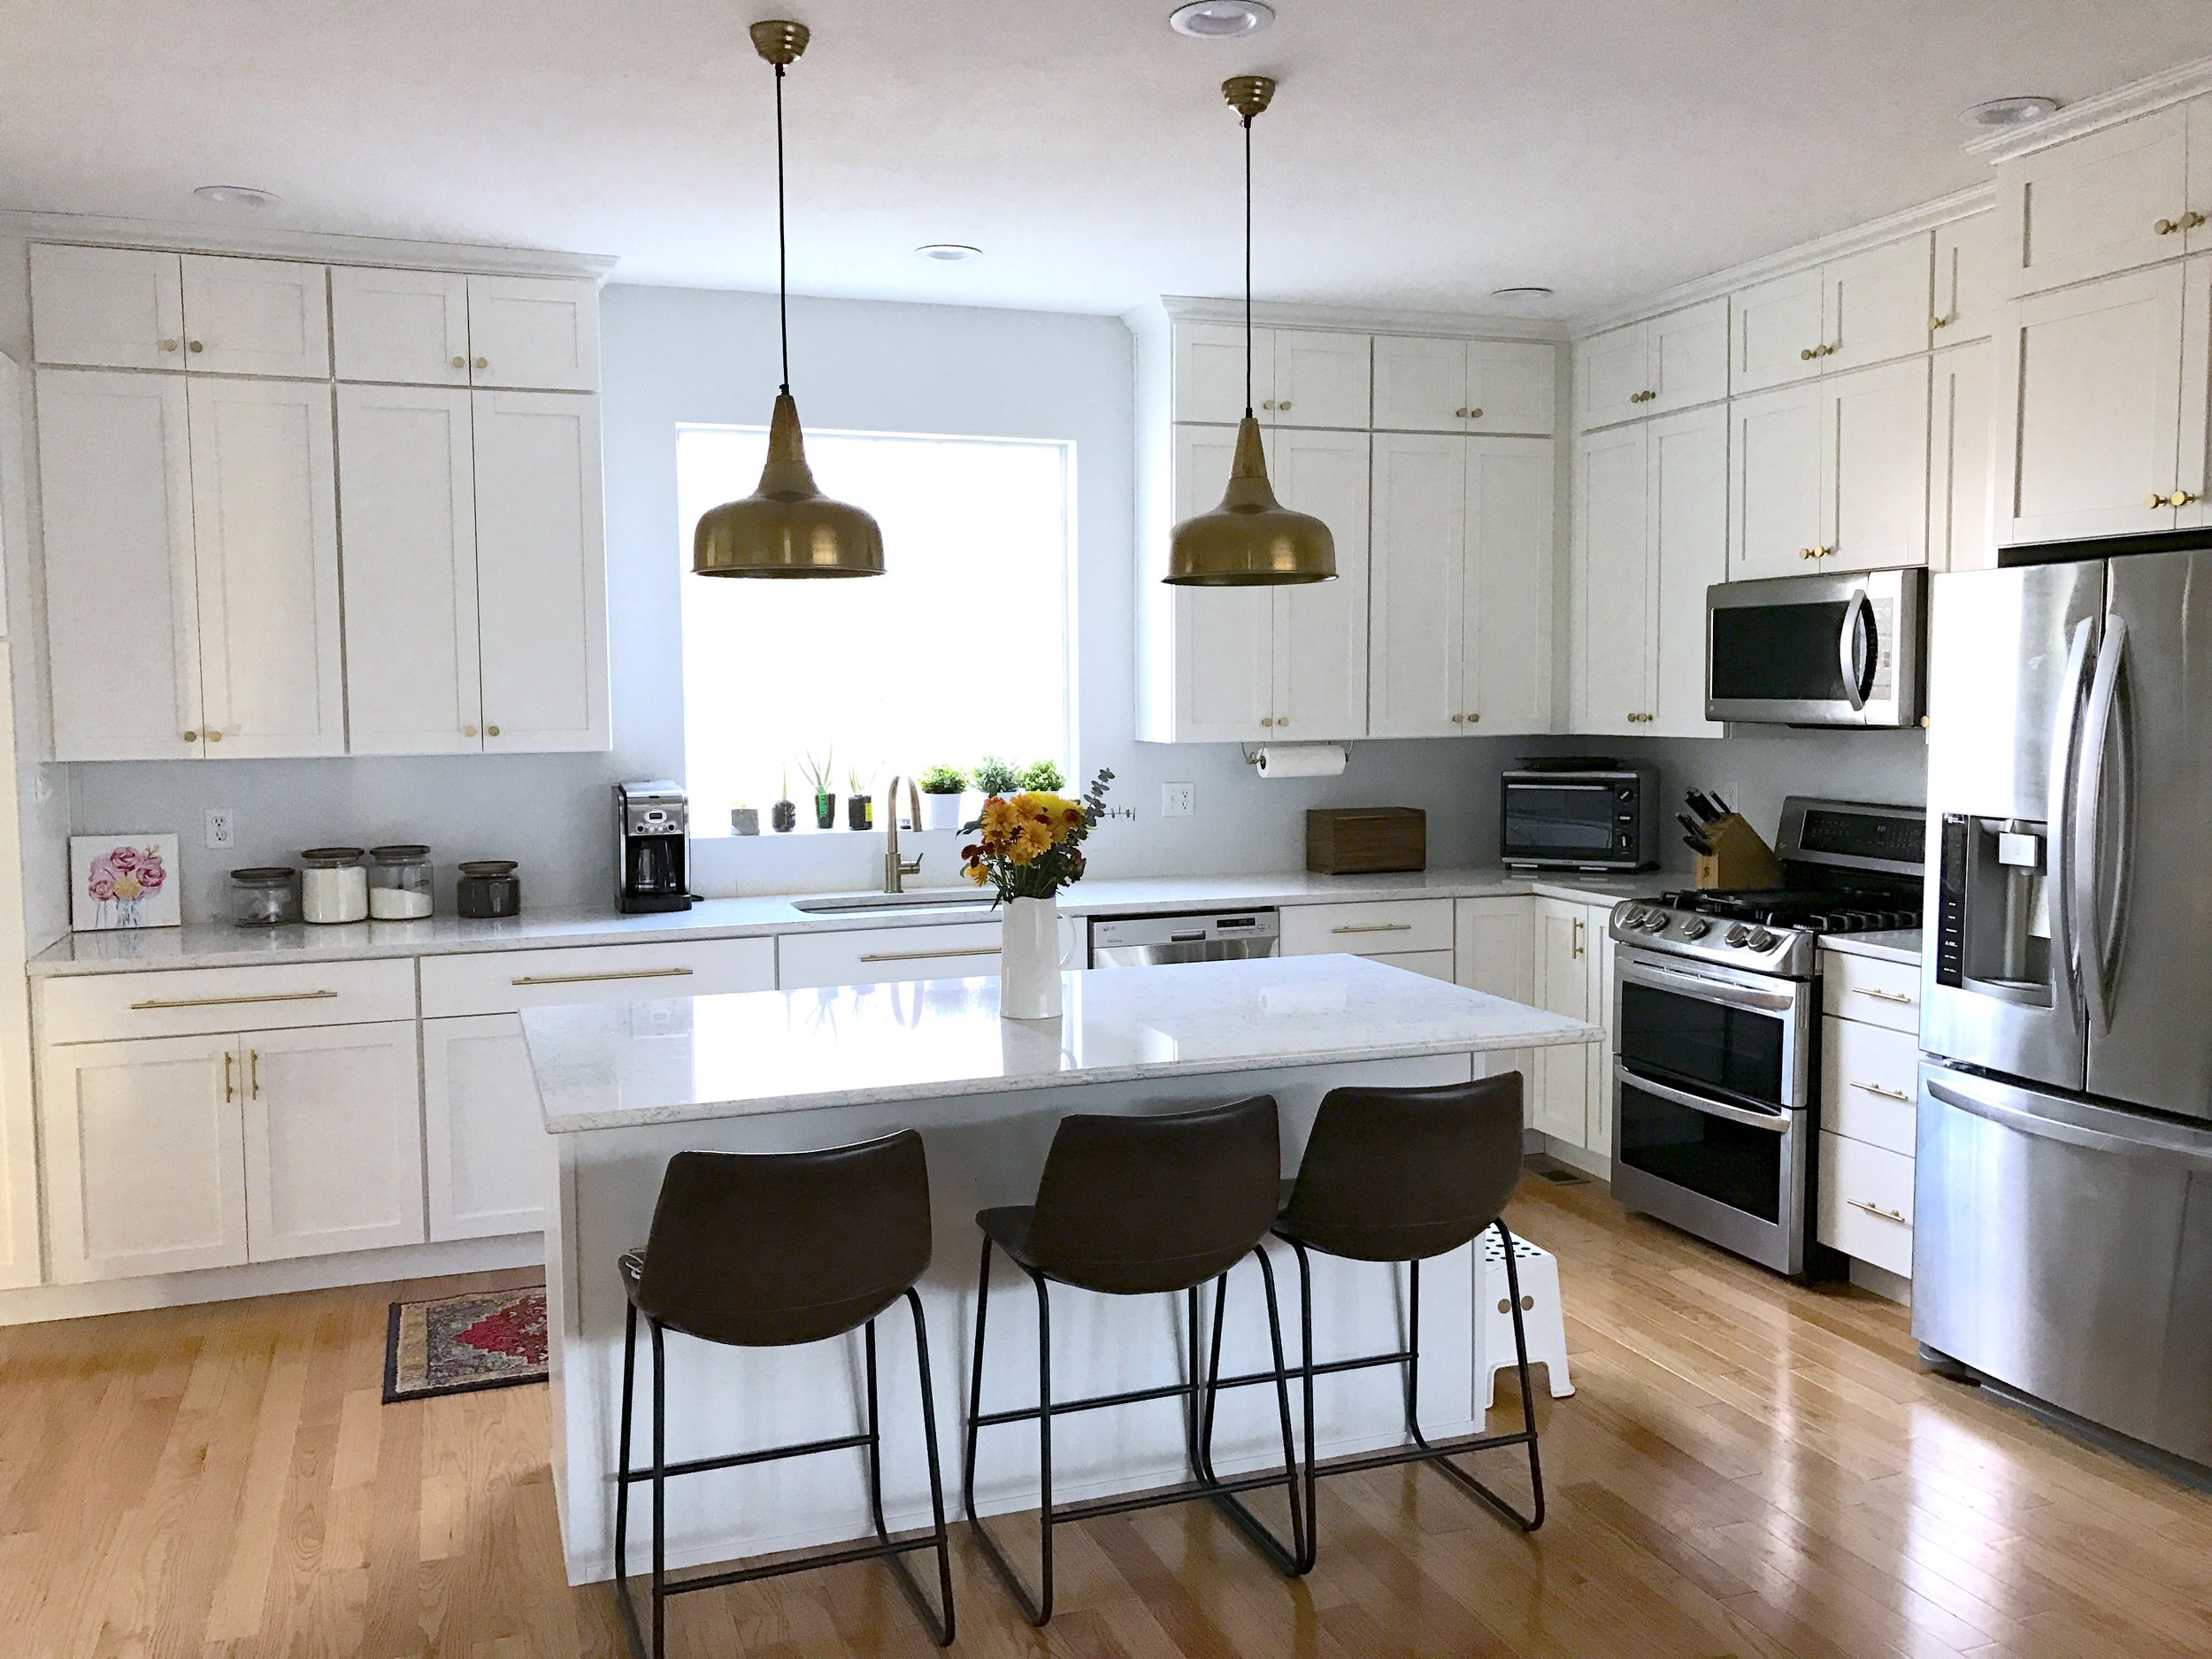 Kitchen Reveal: Part 2!